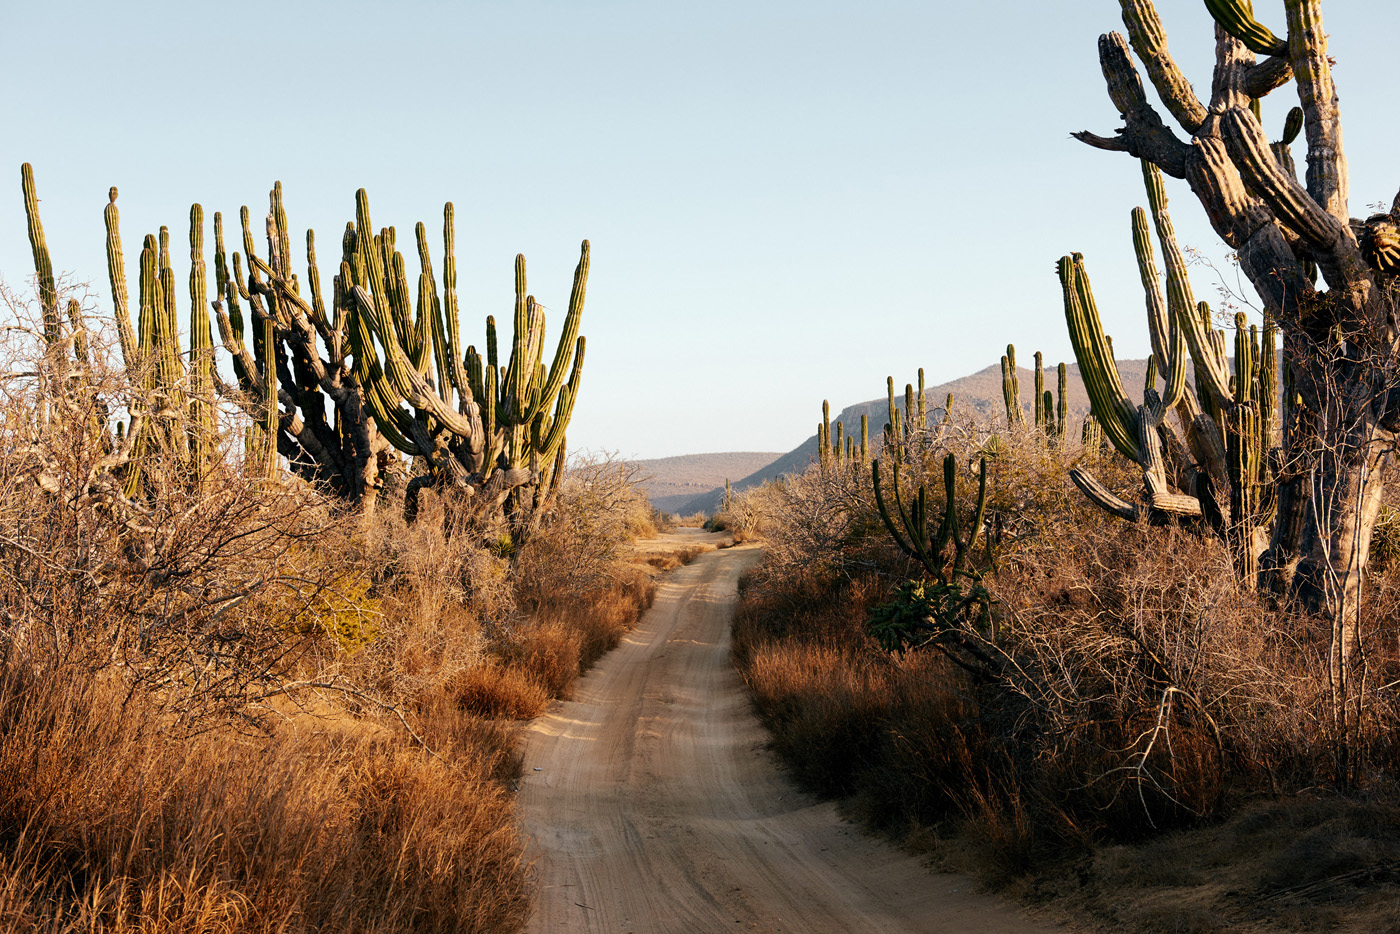 Desert Road with Cacti